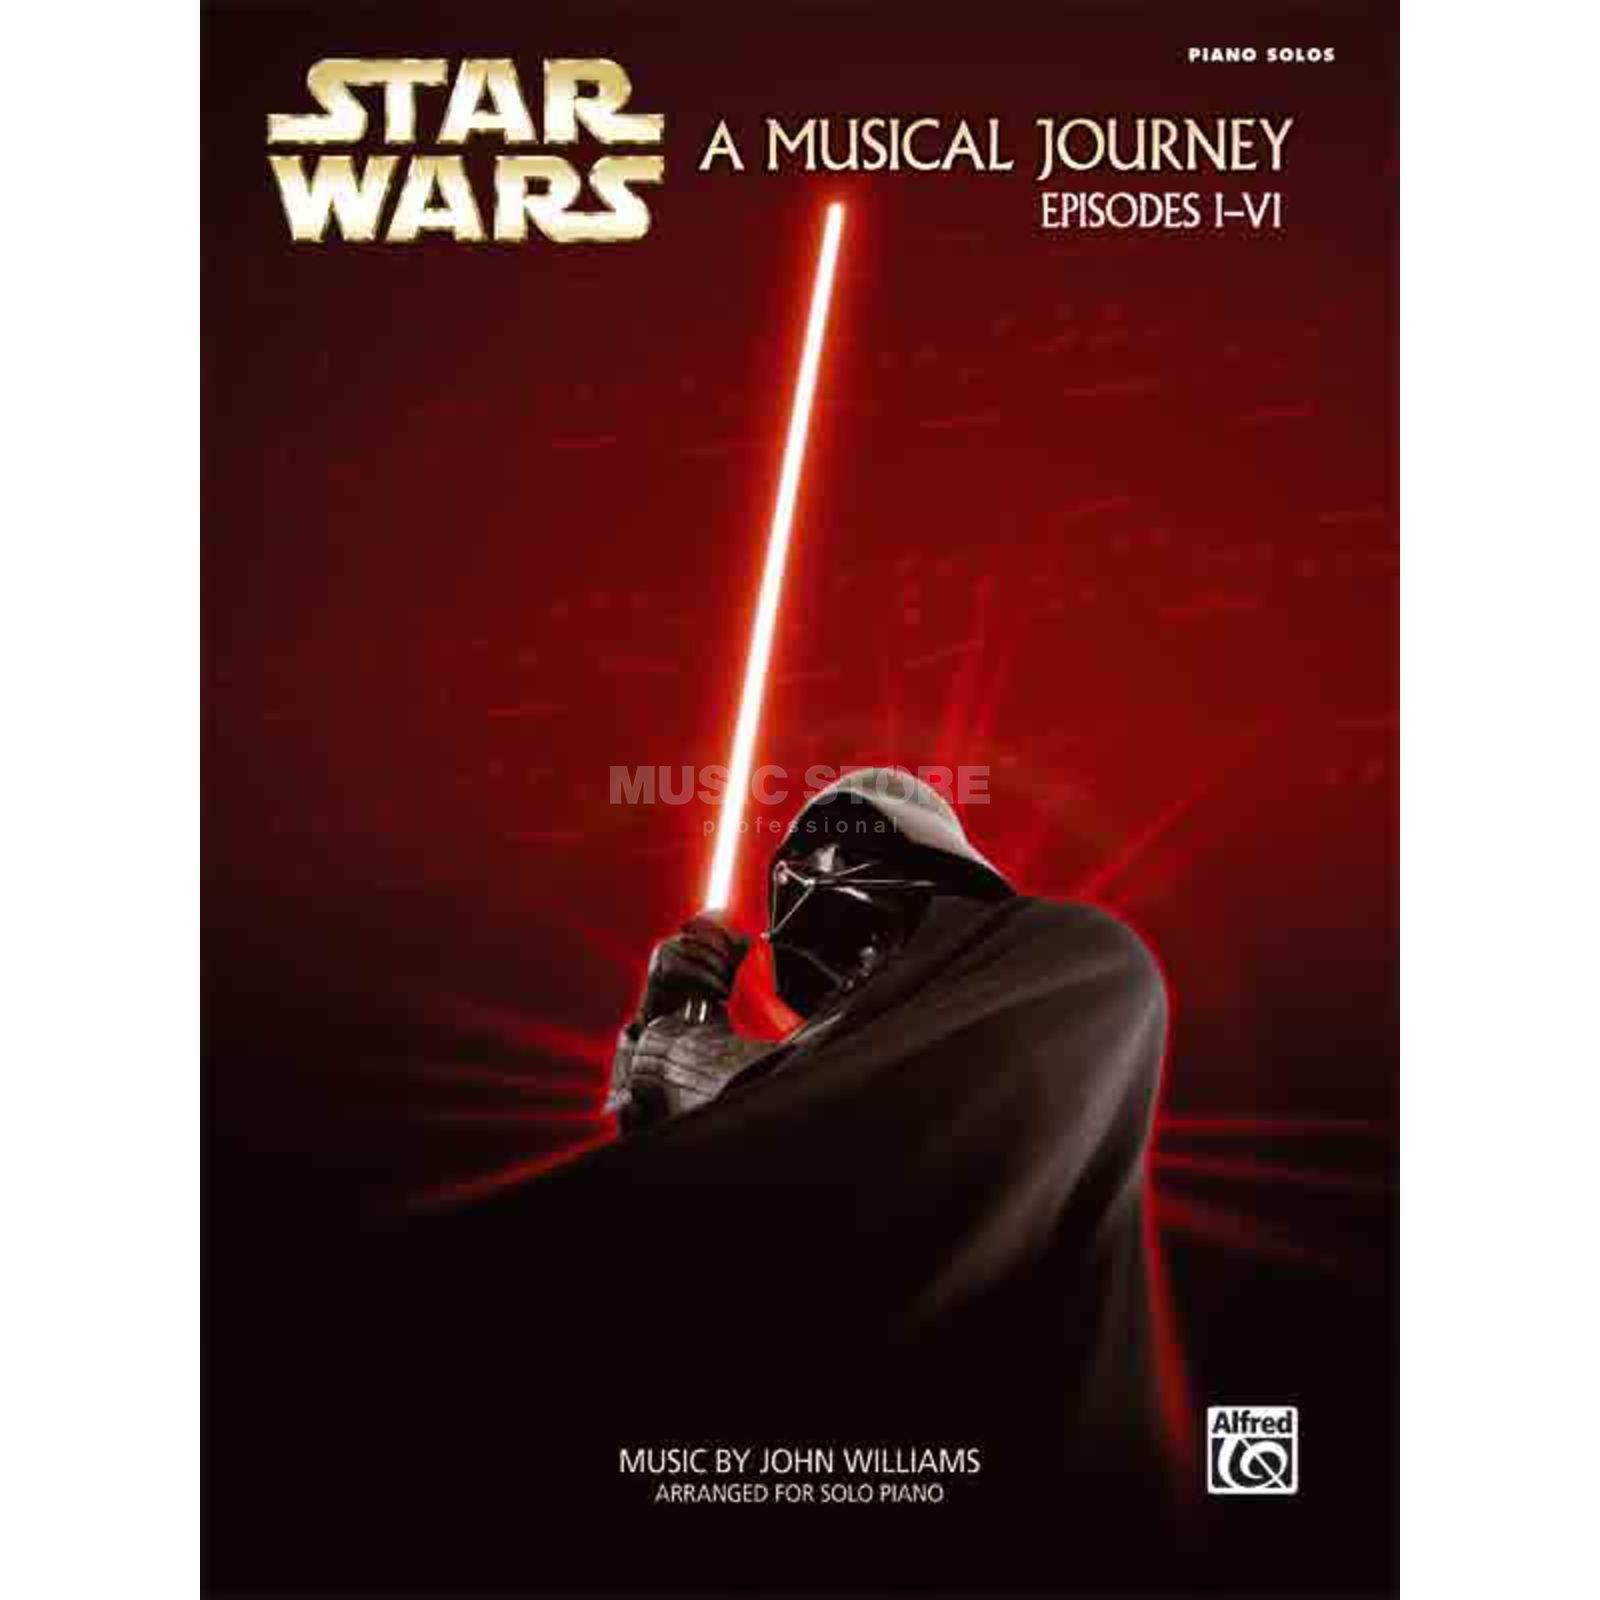 Alfred Music Star Wars A Musical Journey Episodes I-VI - Piano Solo Produktbild